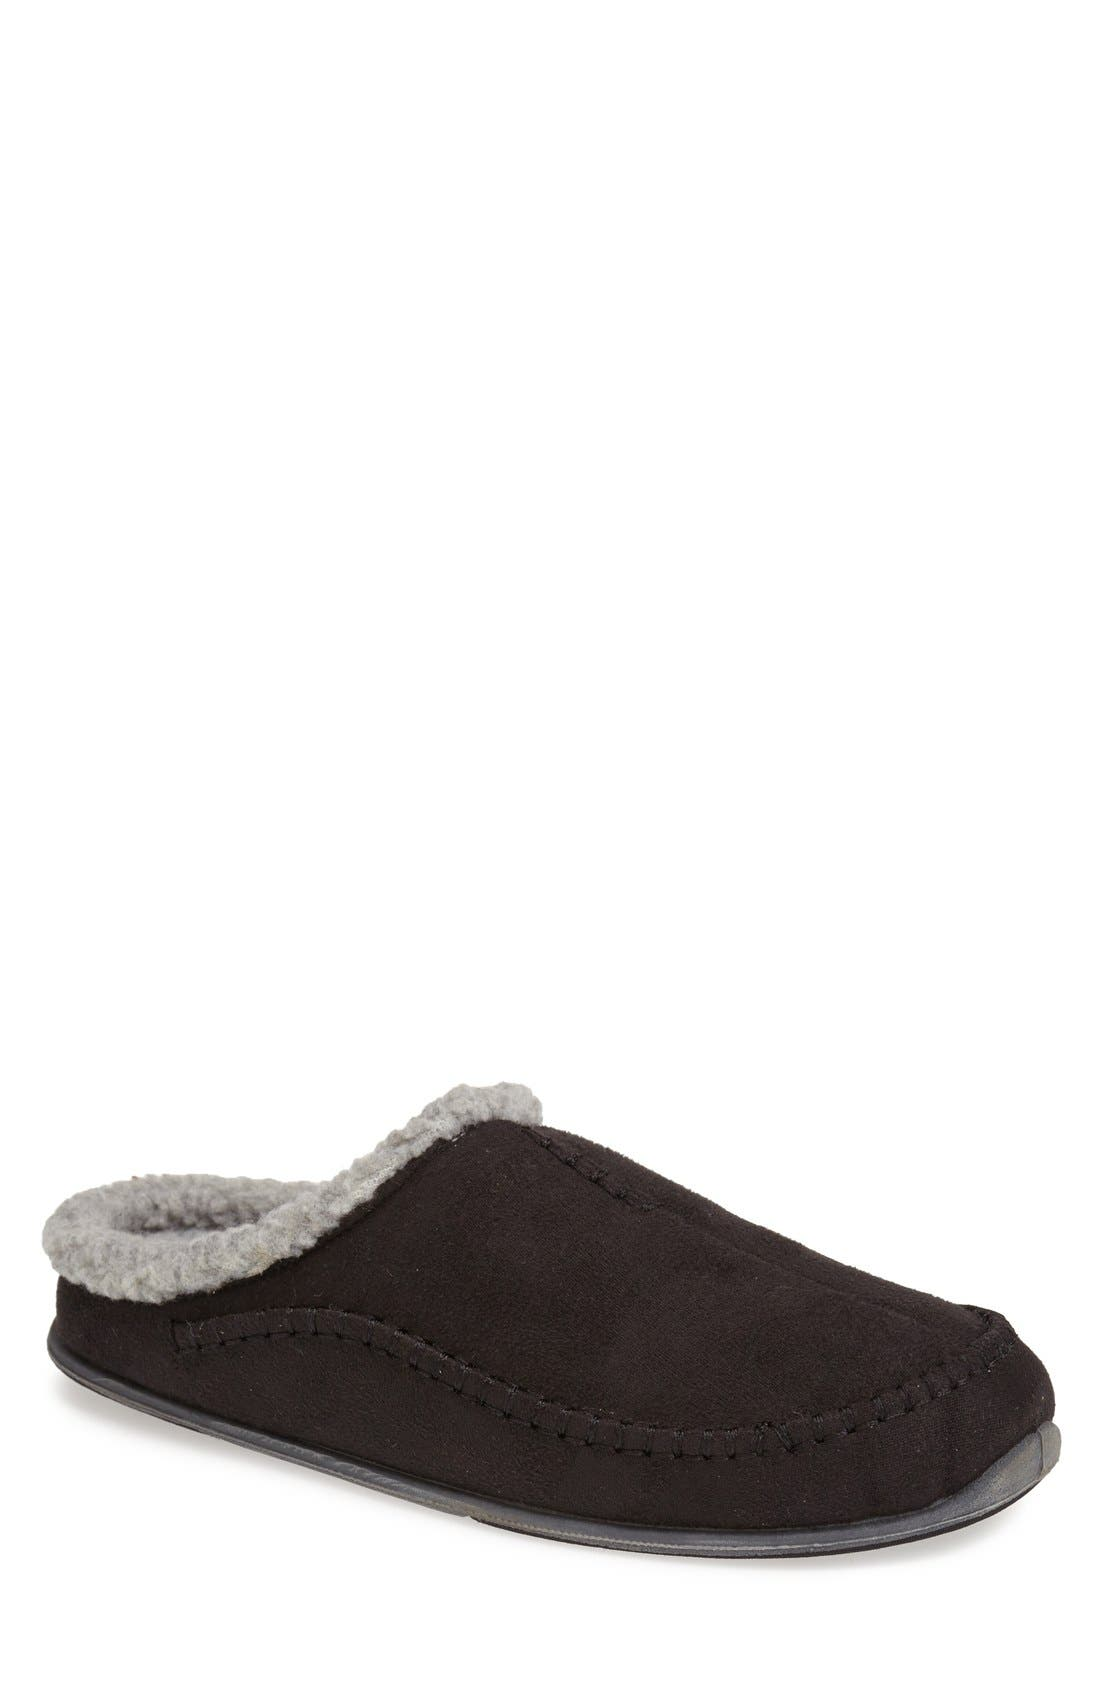 Deer Stags 'Nordic' Slipper (Men)